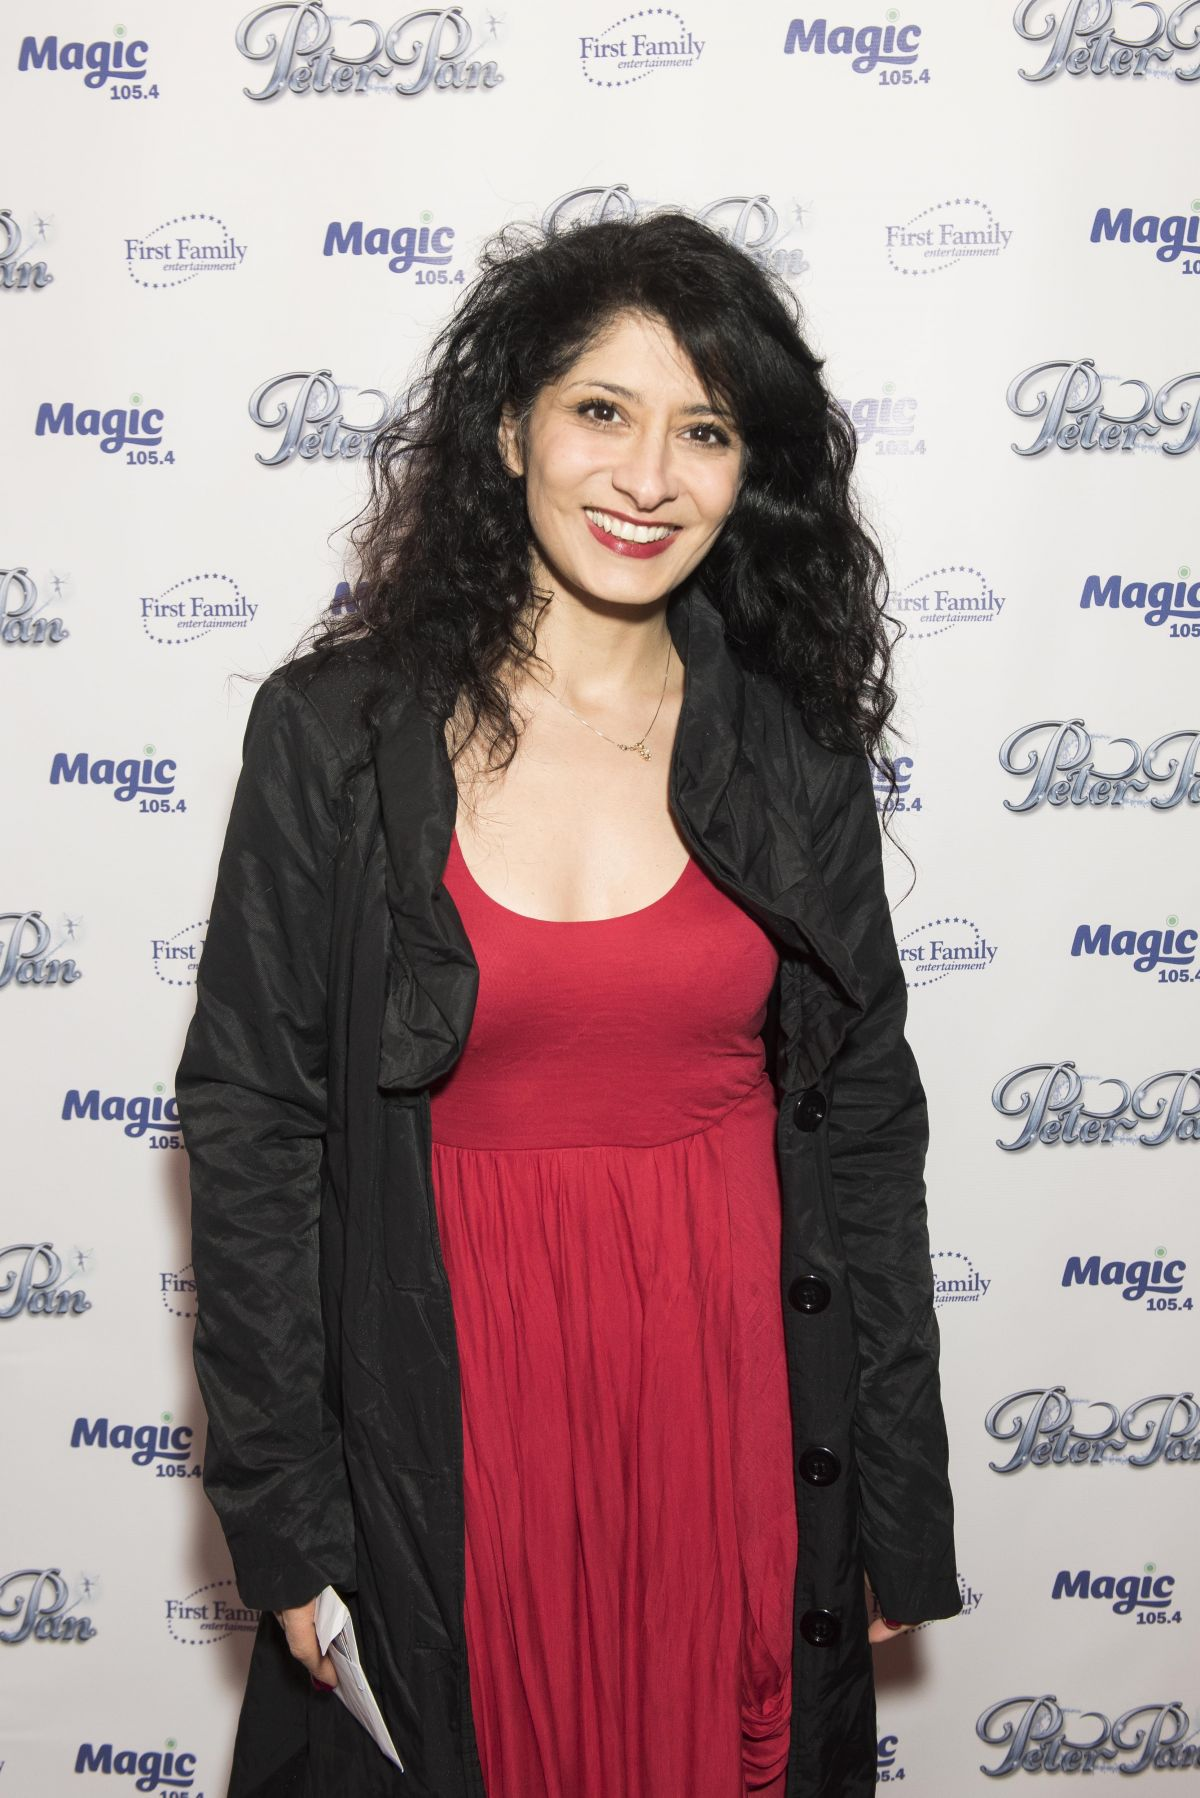 SHAPPI KHORSANDI at Peter Pan and Tinker Bell – A Pirates Christmas Opening Night in Pasadena 12/09/2015